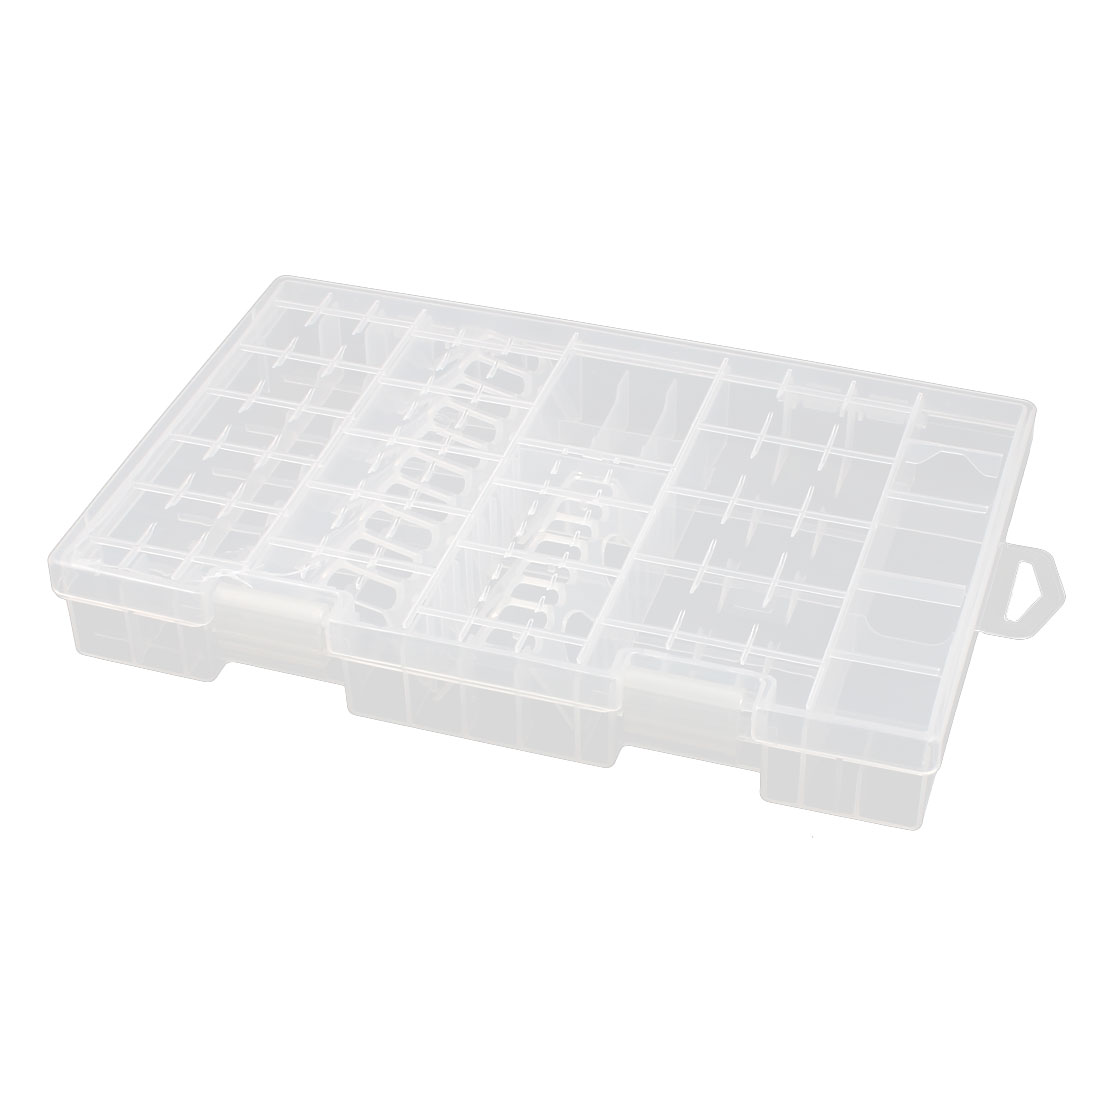 Hard Plastic Case Holder Storage Box Container for 10-20 x AA Battery